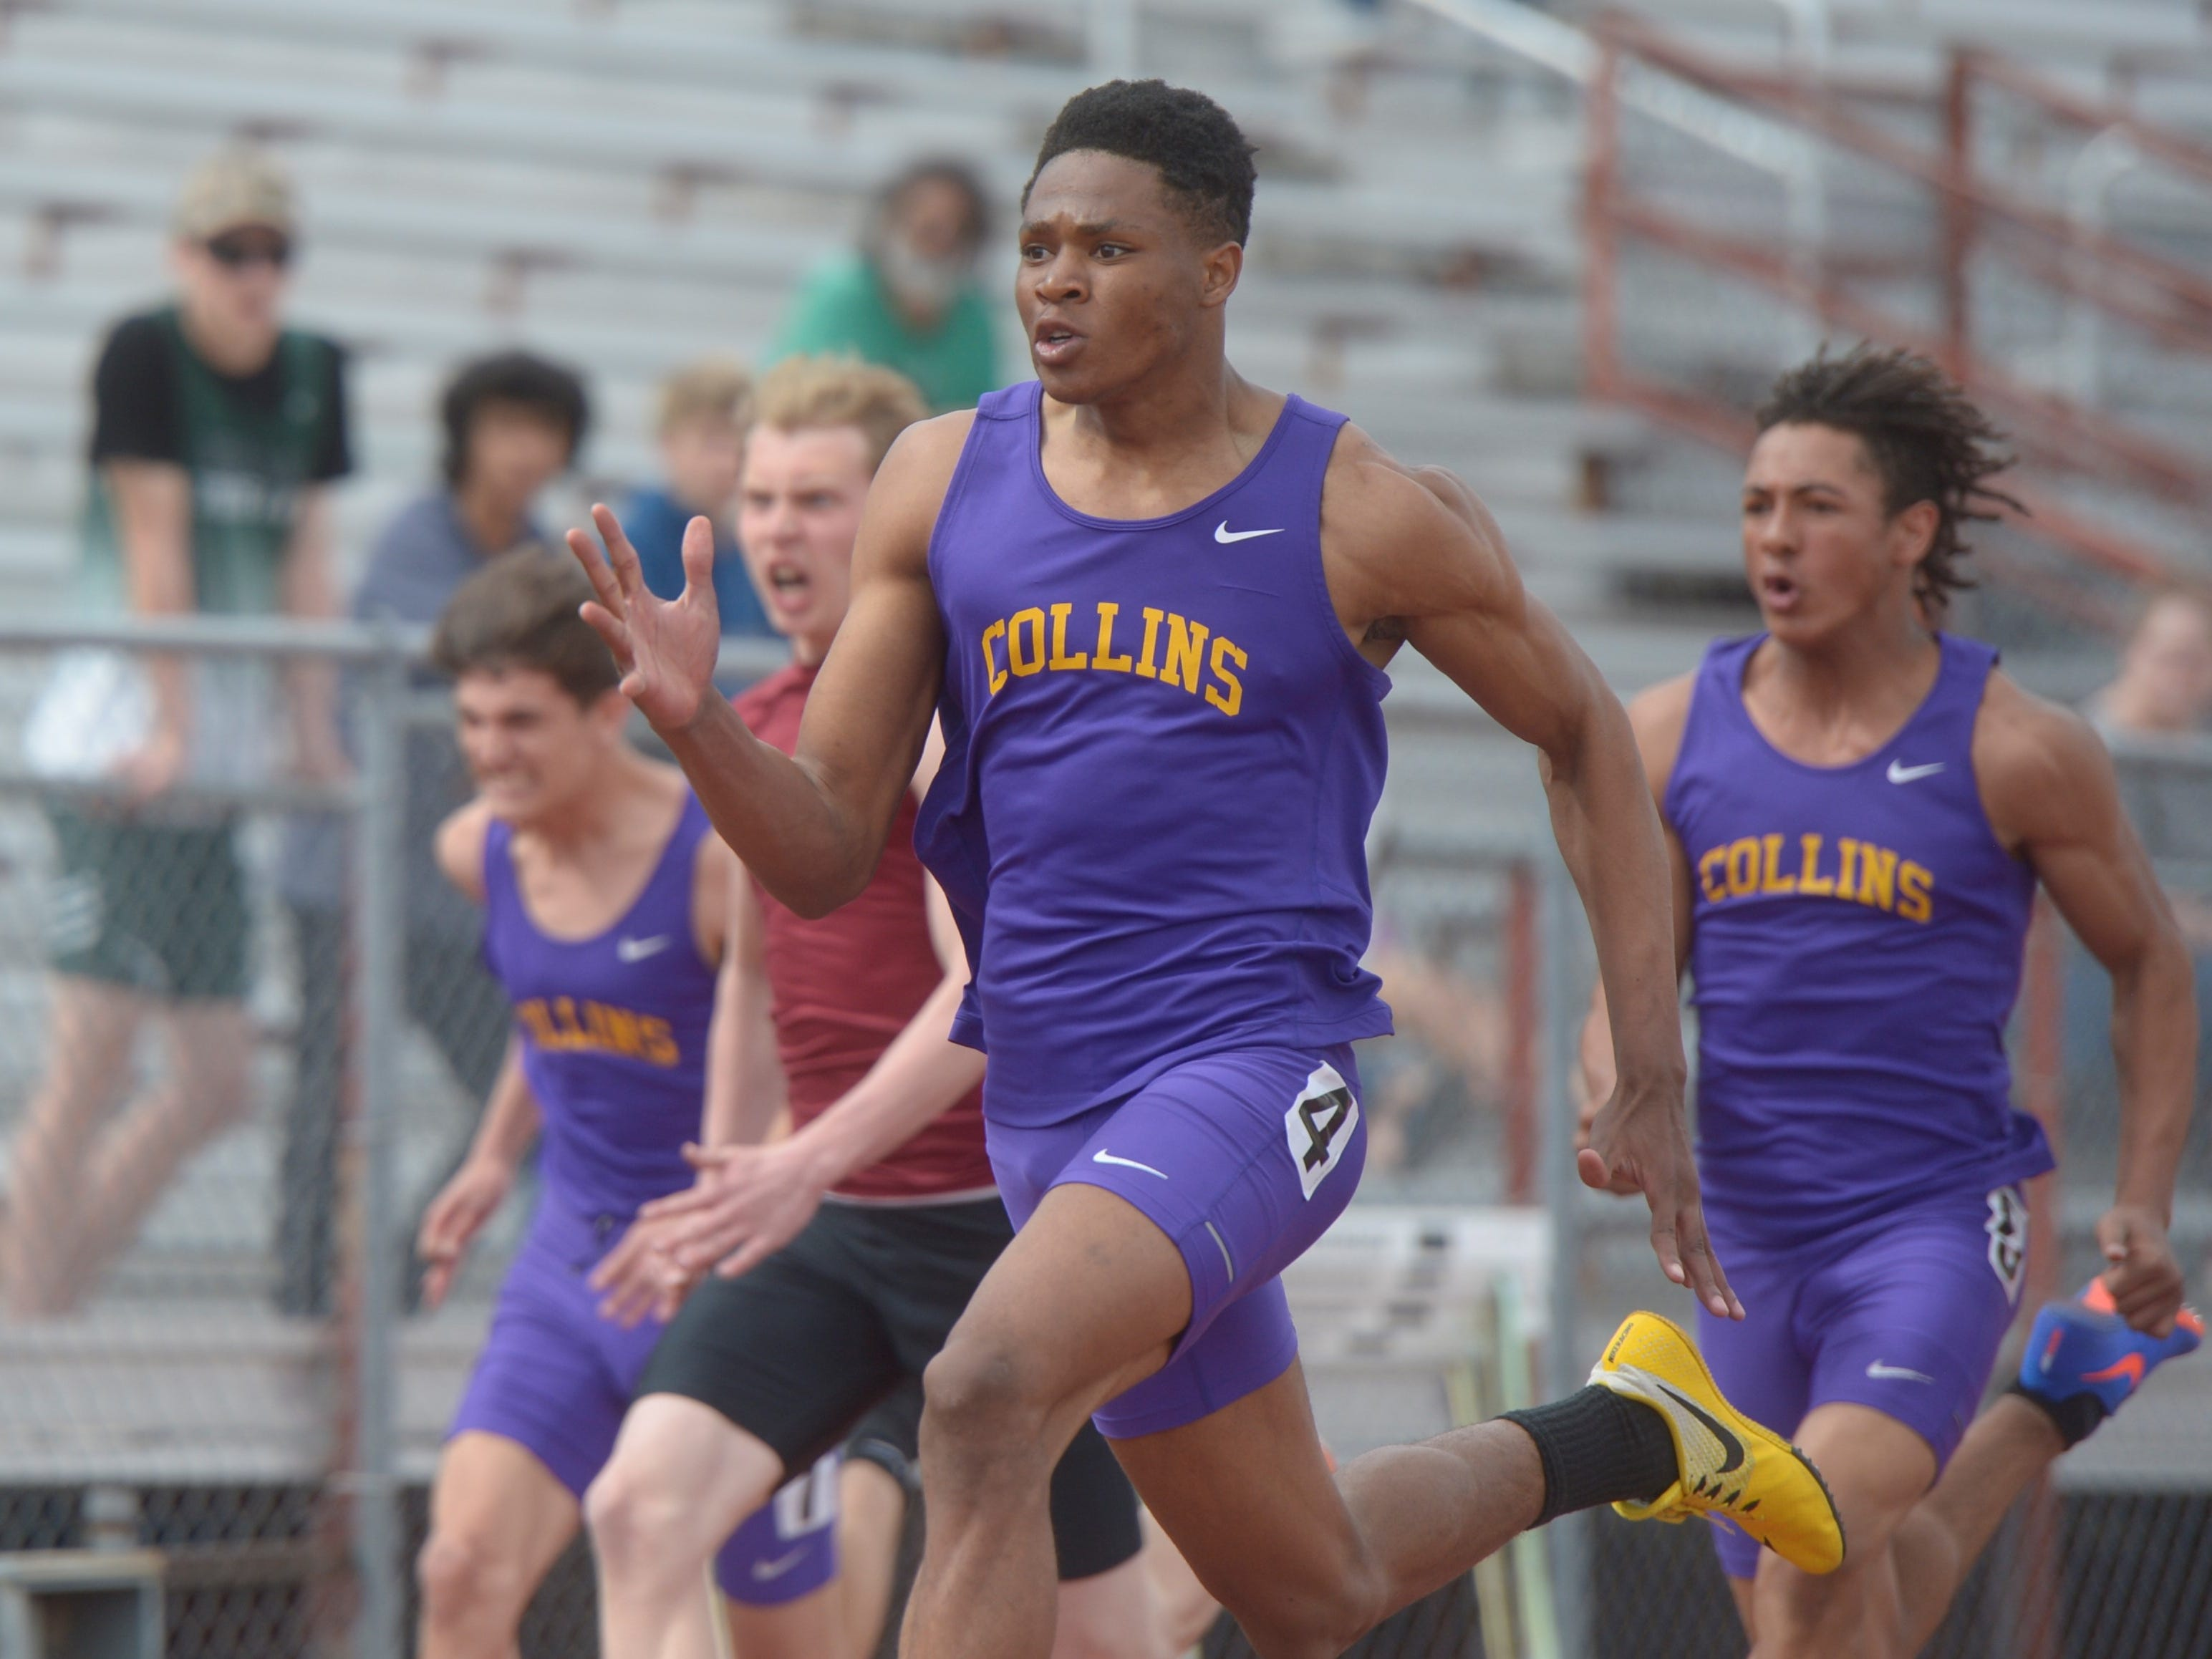 Fort Collins High School's Micaylon Moore runs the 100-meter dash at the Fort Collins city meet at French Field on Tuesday, April 9, 2019.